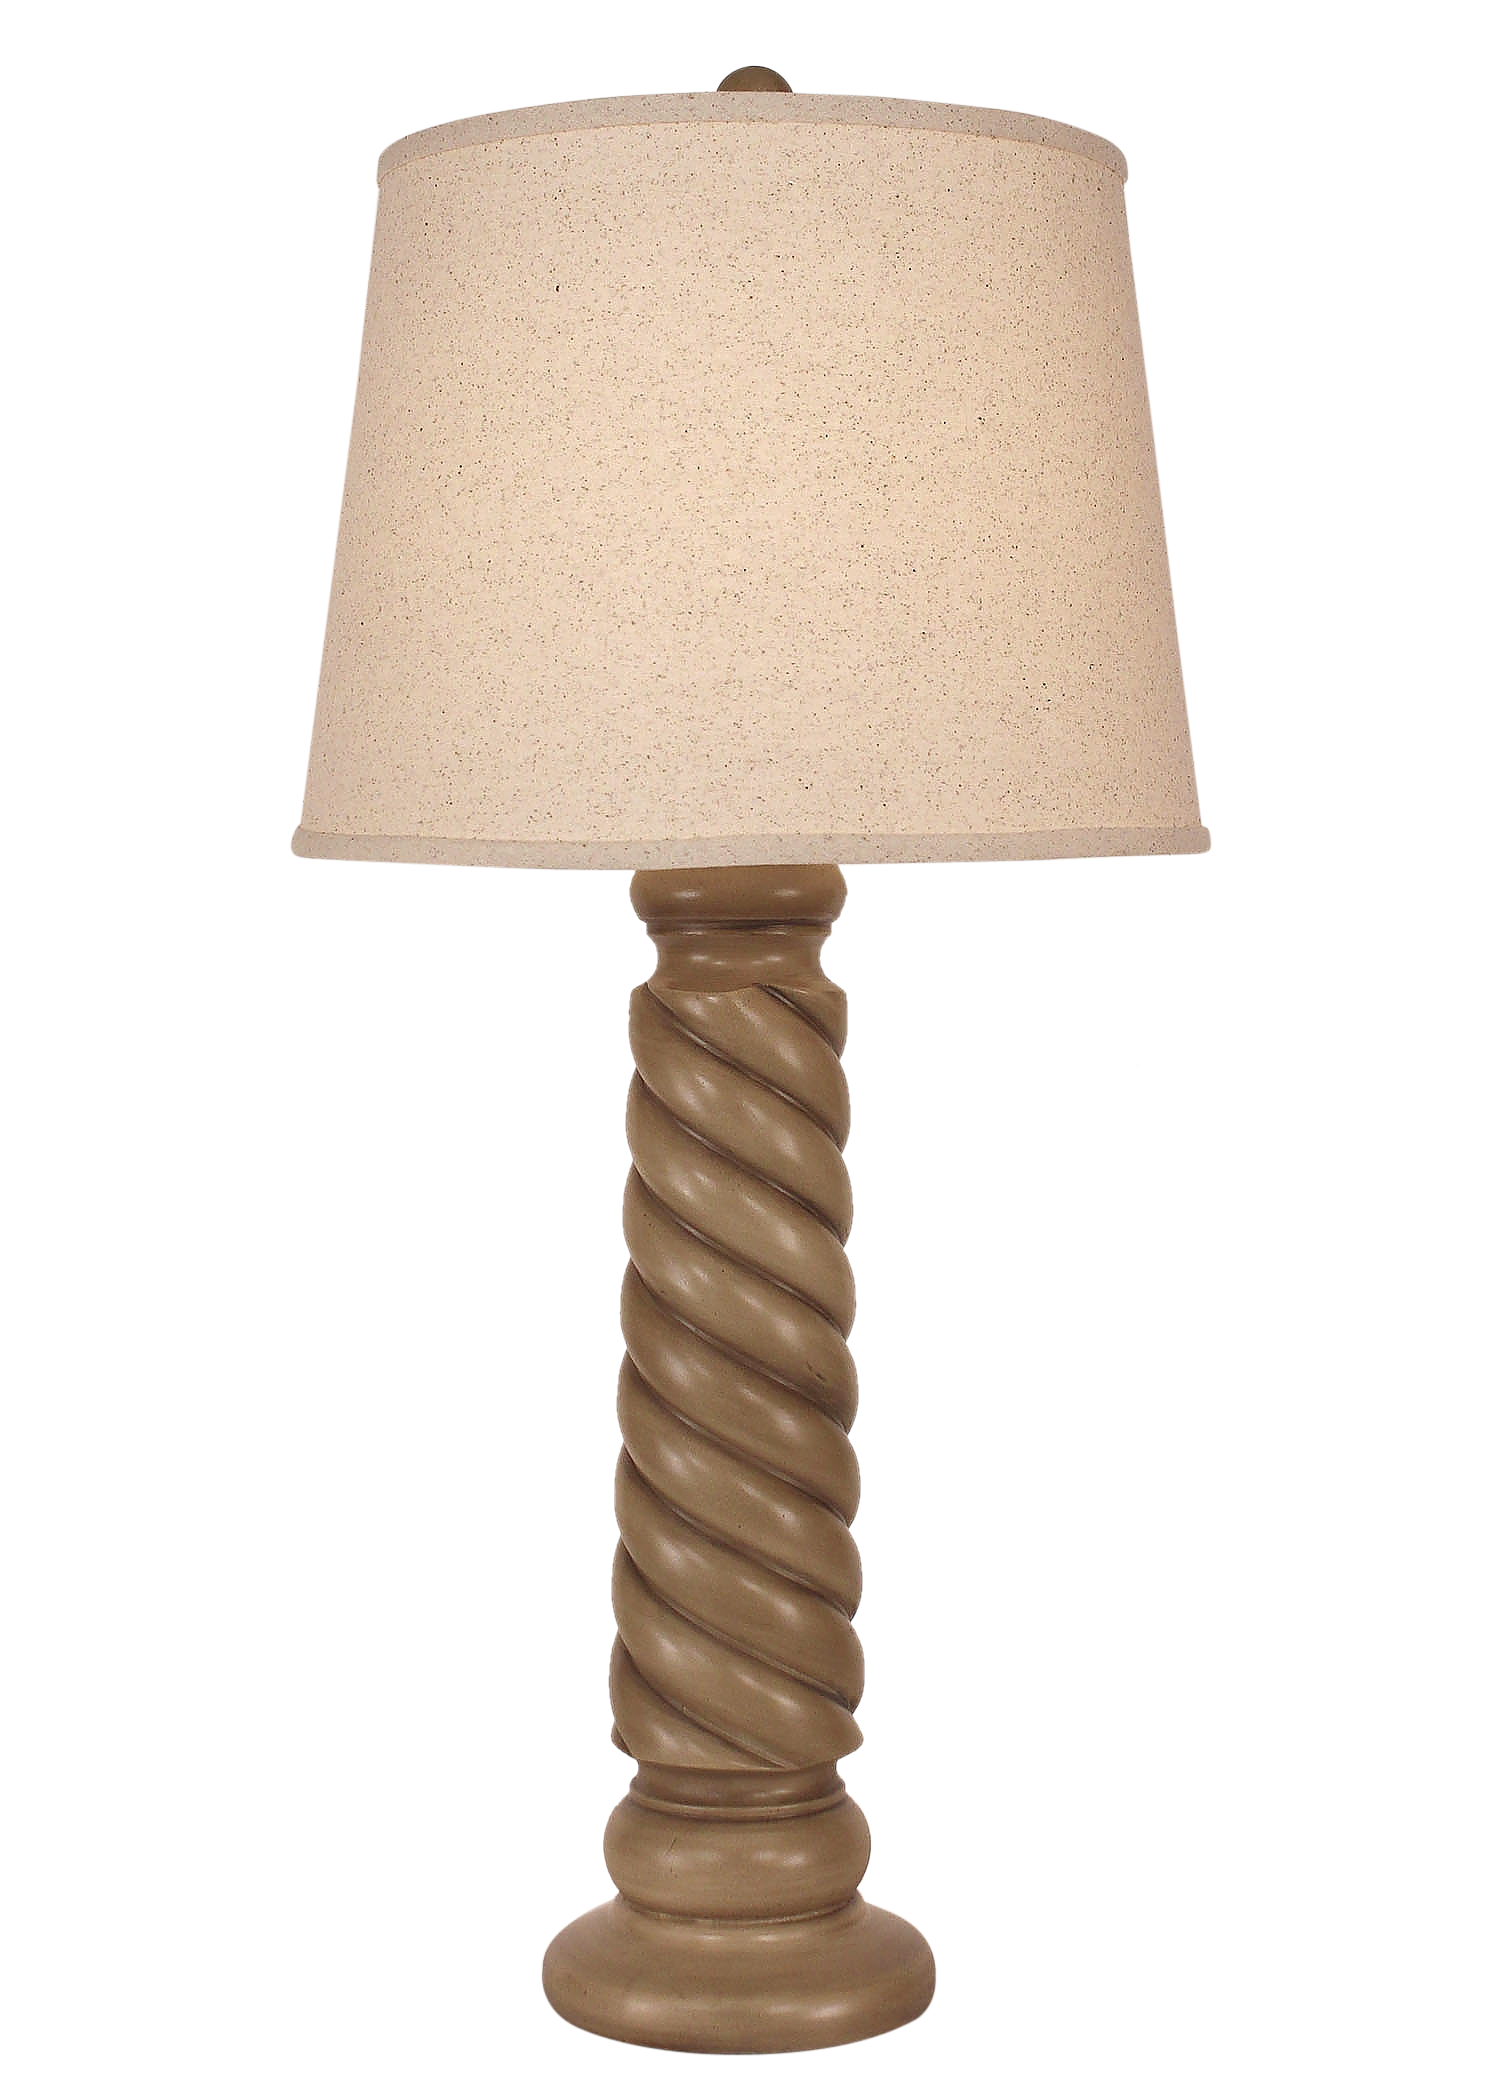 Cottage Glazed Carousel Table Lamp - Coast Lamp Shop